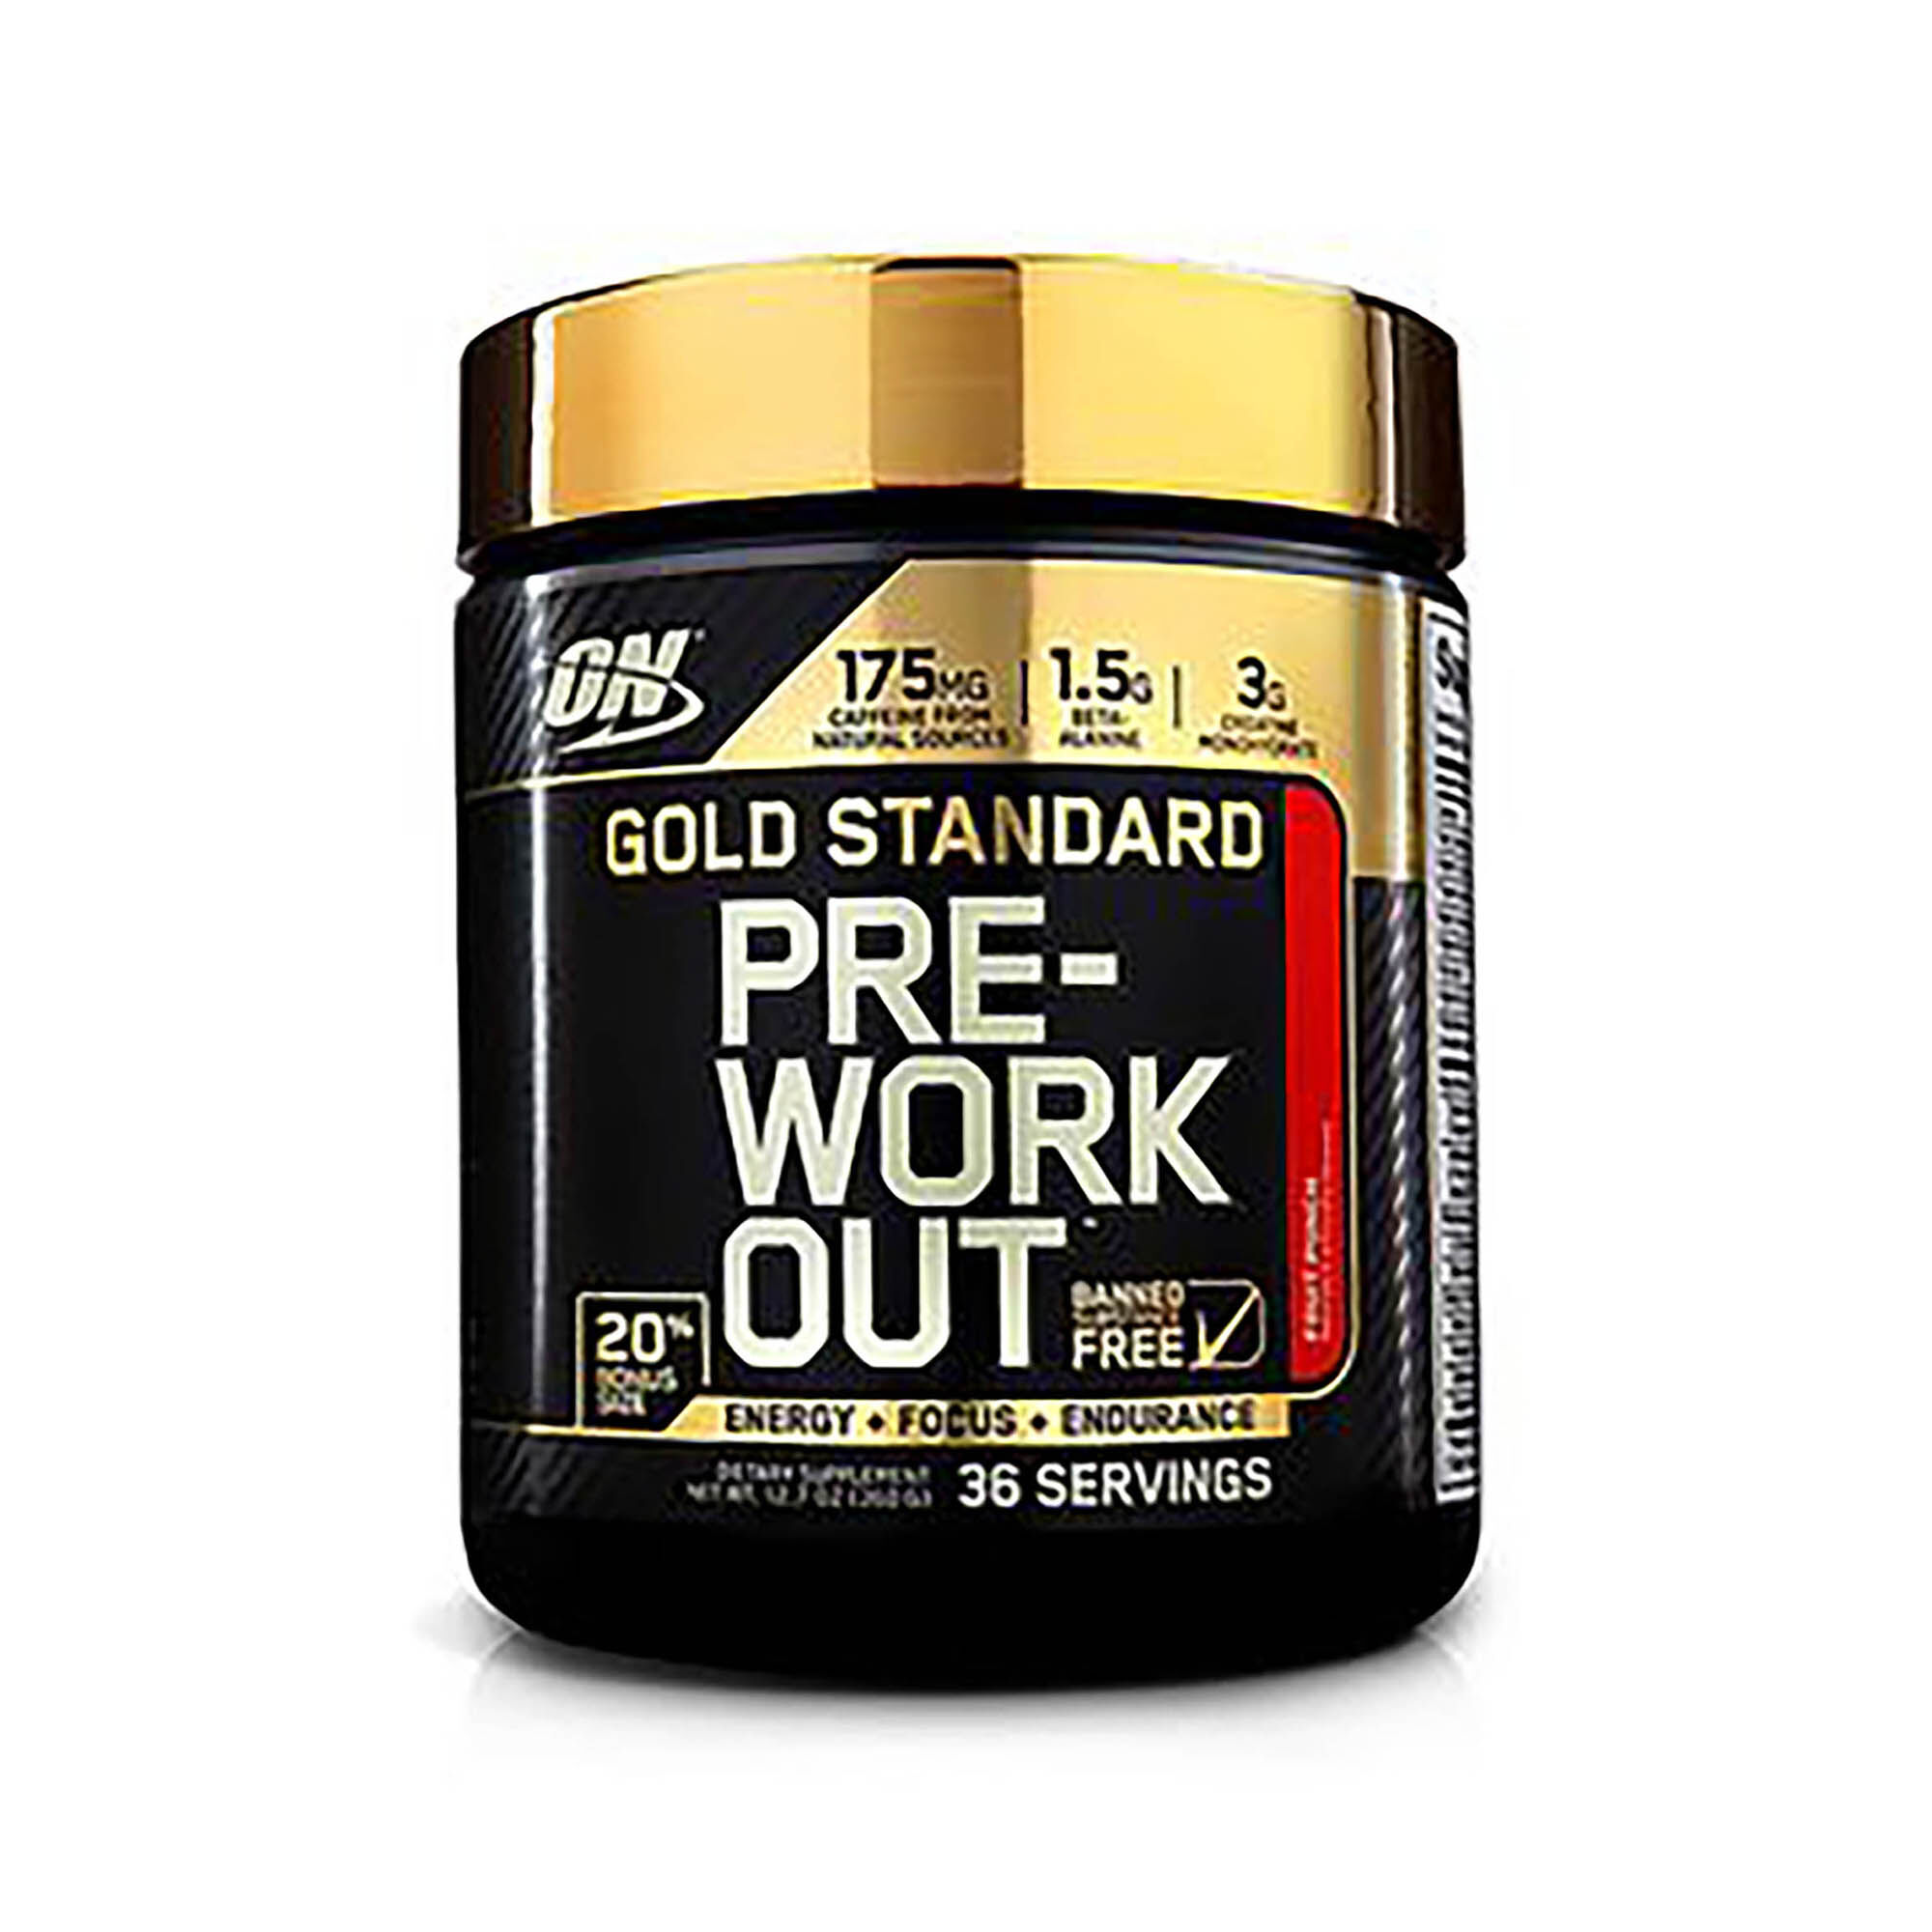 Gold Standard Pre-workoutg�� - Fruit Punch - Exclusive 20% More Free Bonus Size - 36 Servings - Optimum Nutrition - Energy Formulas